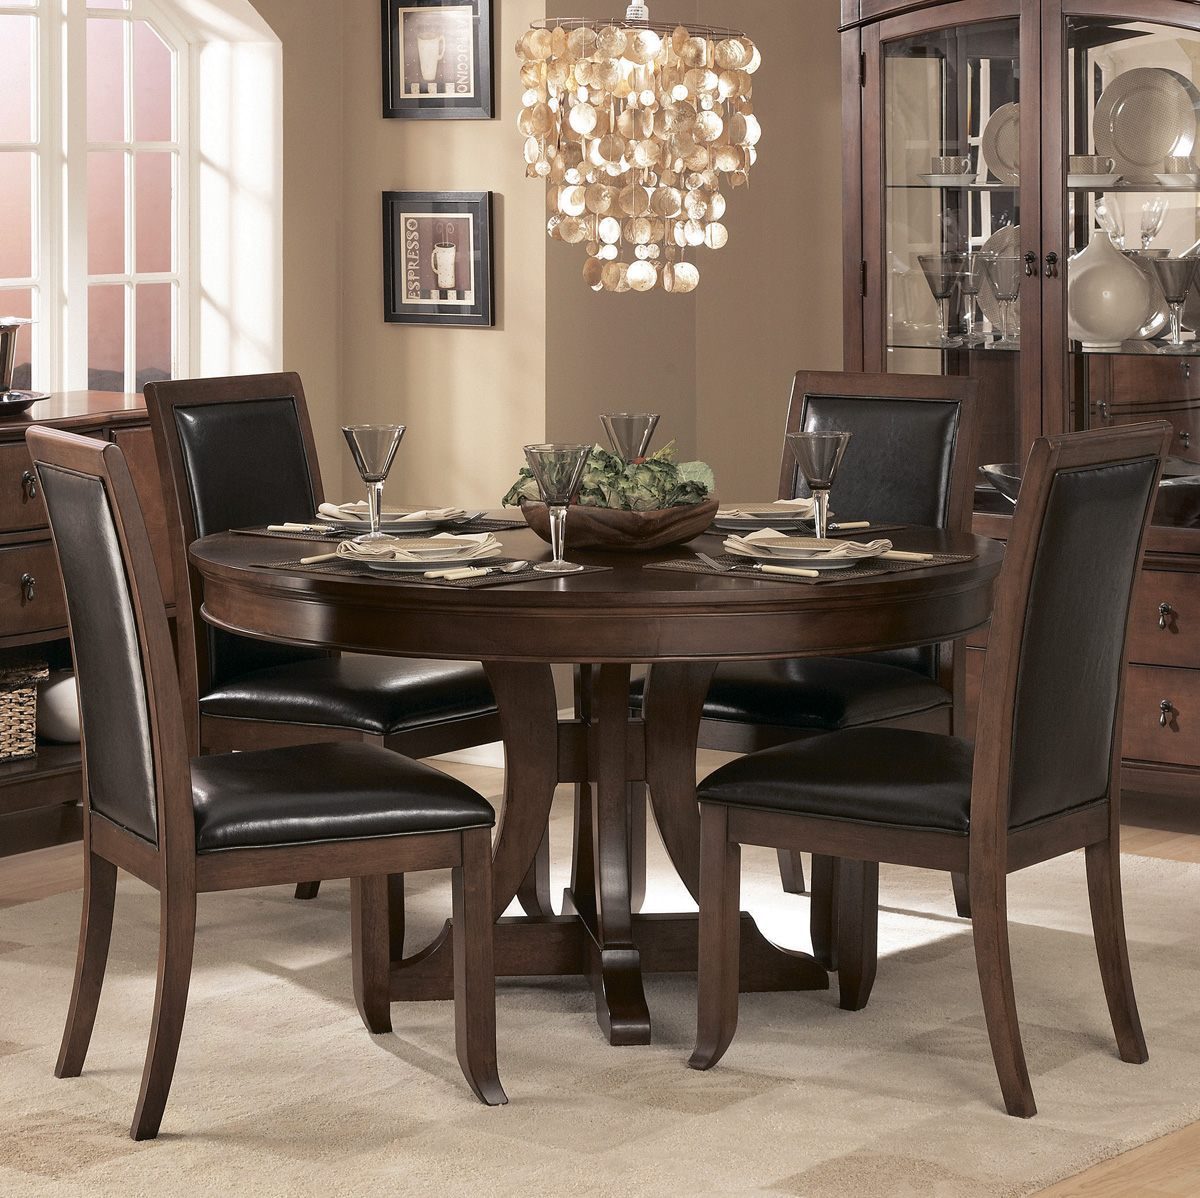 Homelegance Avalon 54 Inch Round Pedestal Dining Table In Cherry